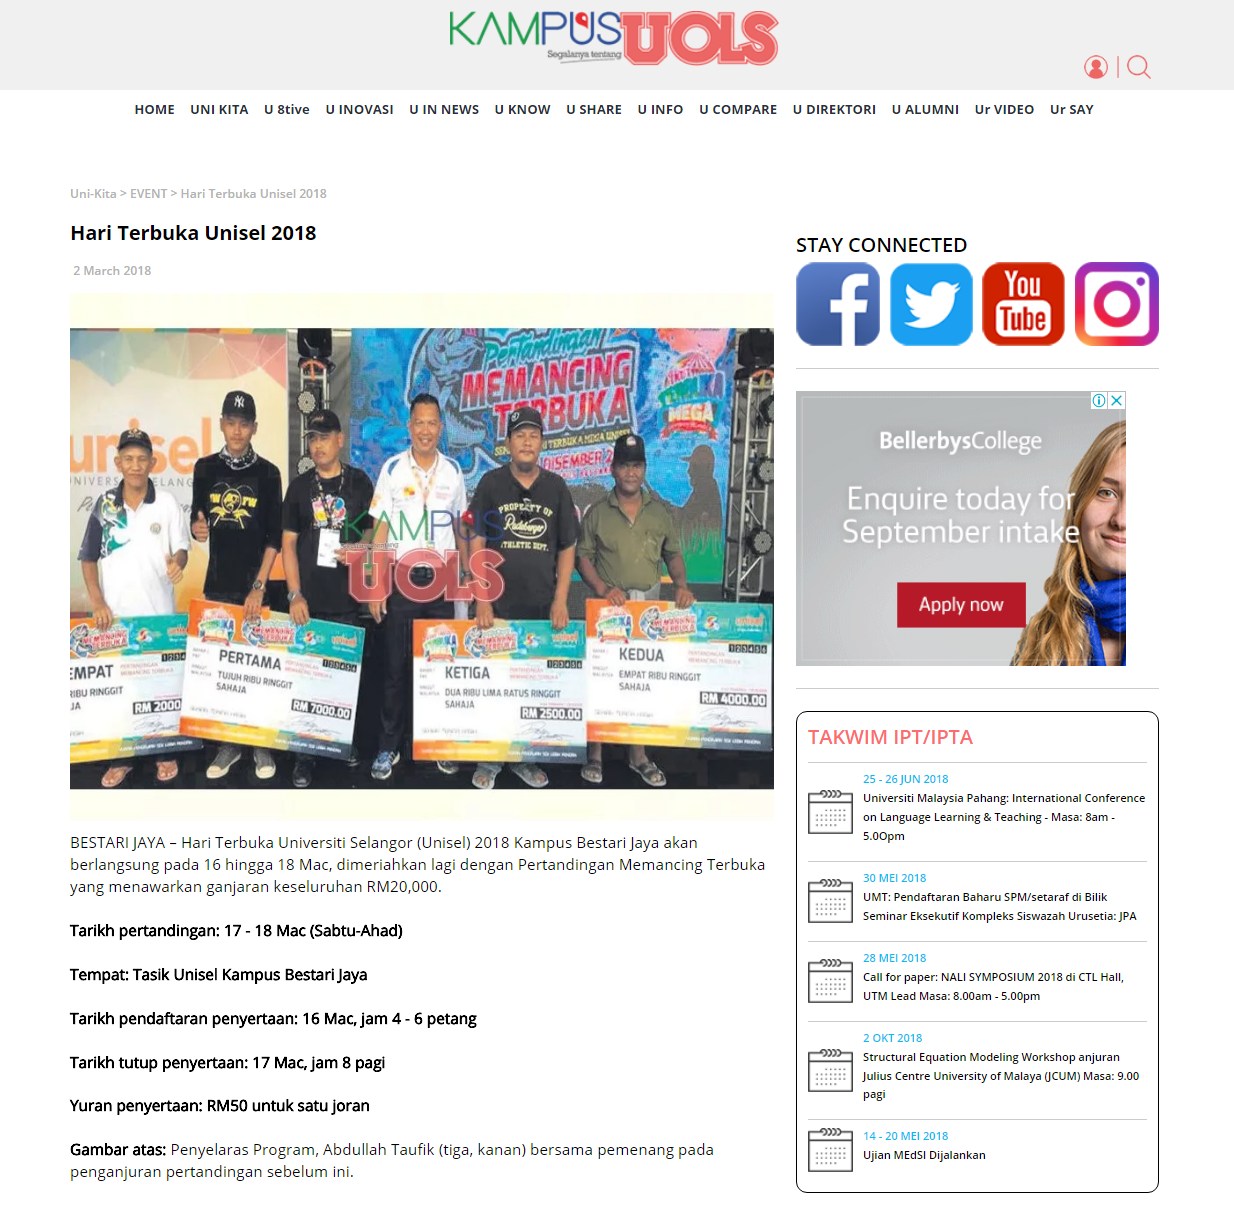 FireShot Capture 70 - Hari Terbuka Unisel 2018 - Kampus_ - http___kampusuols.com_article_302_